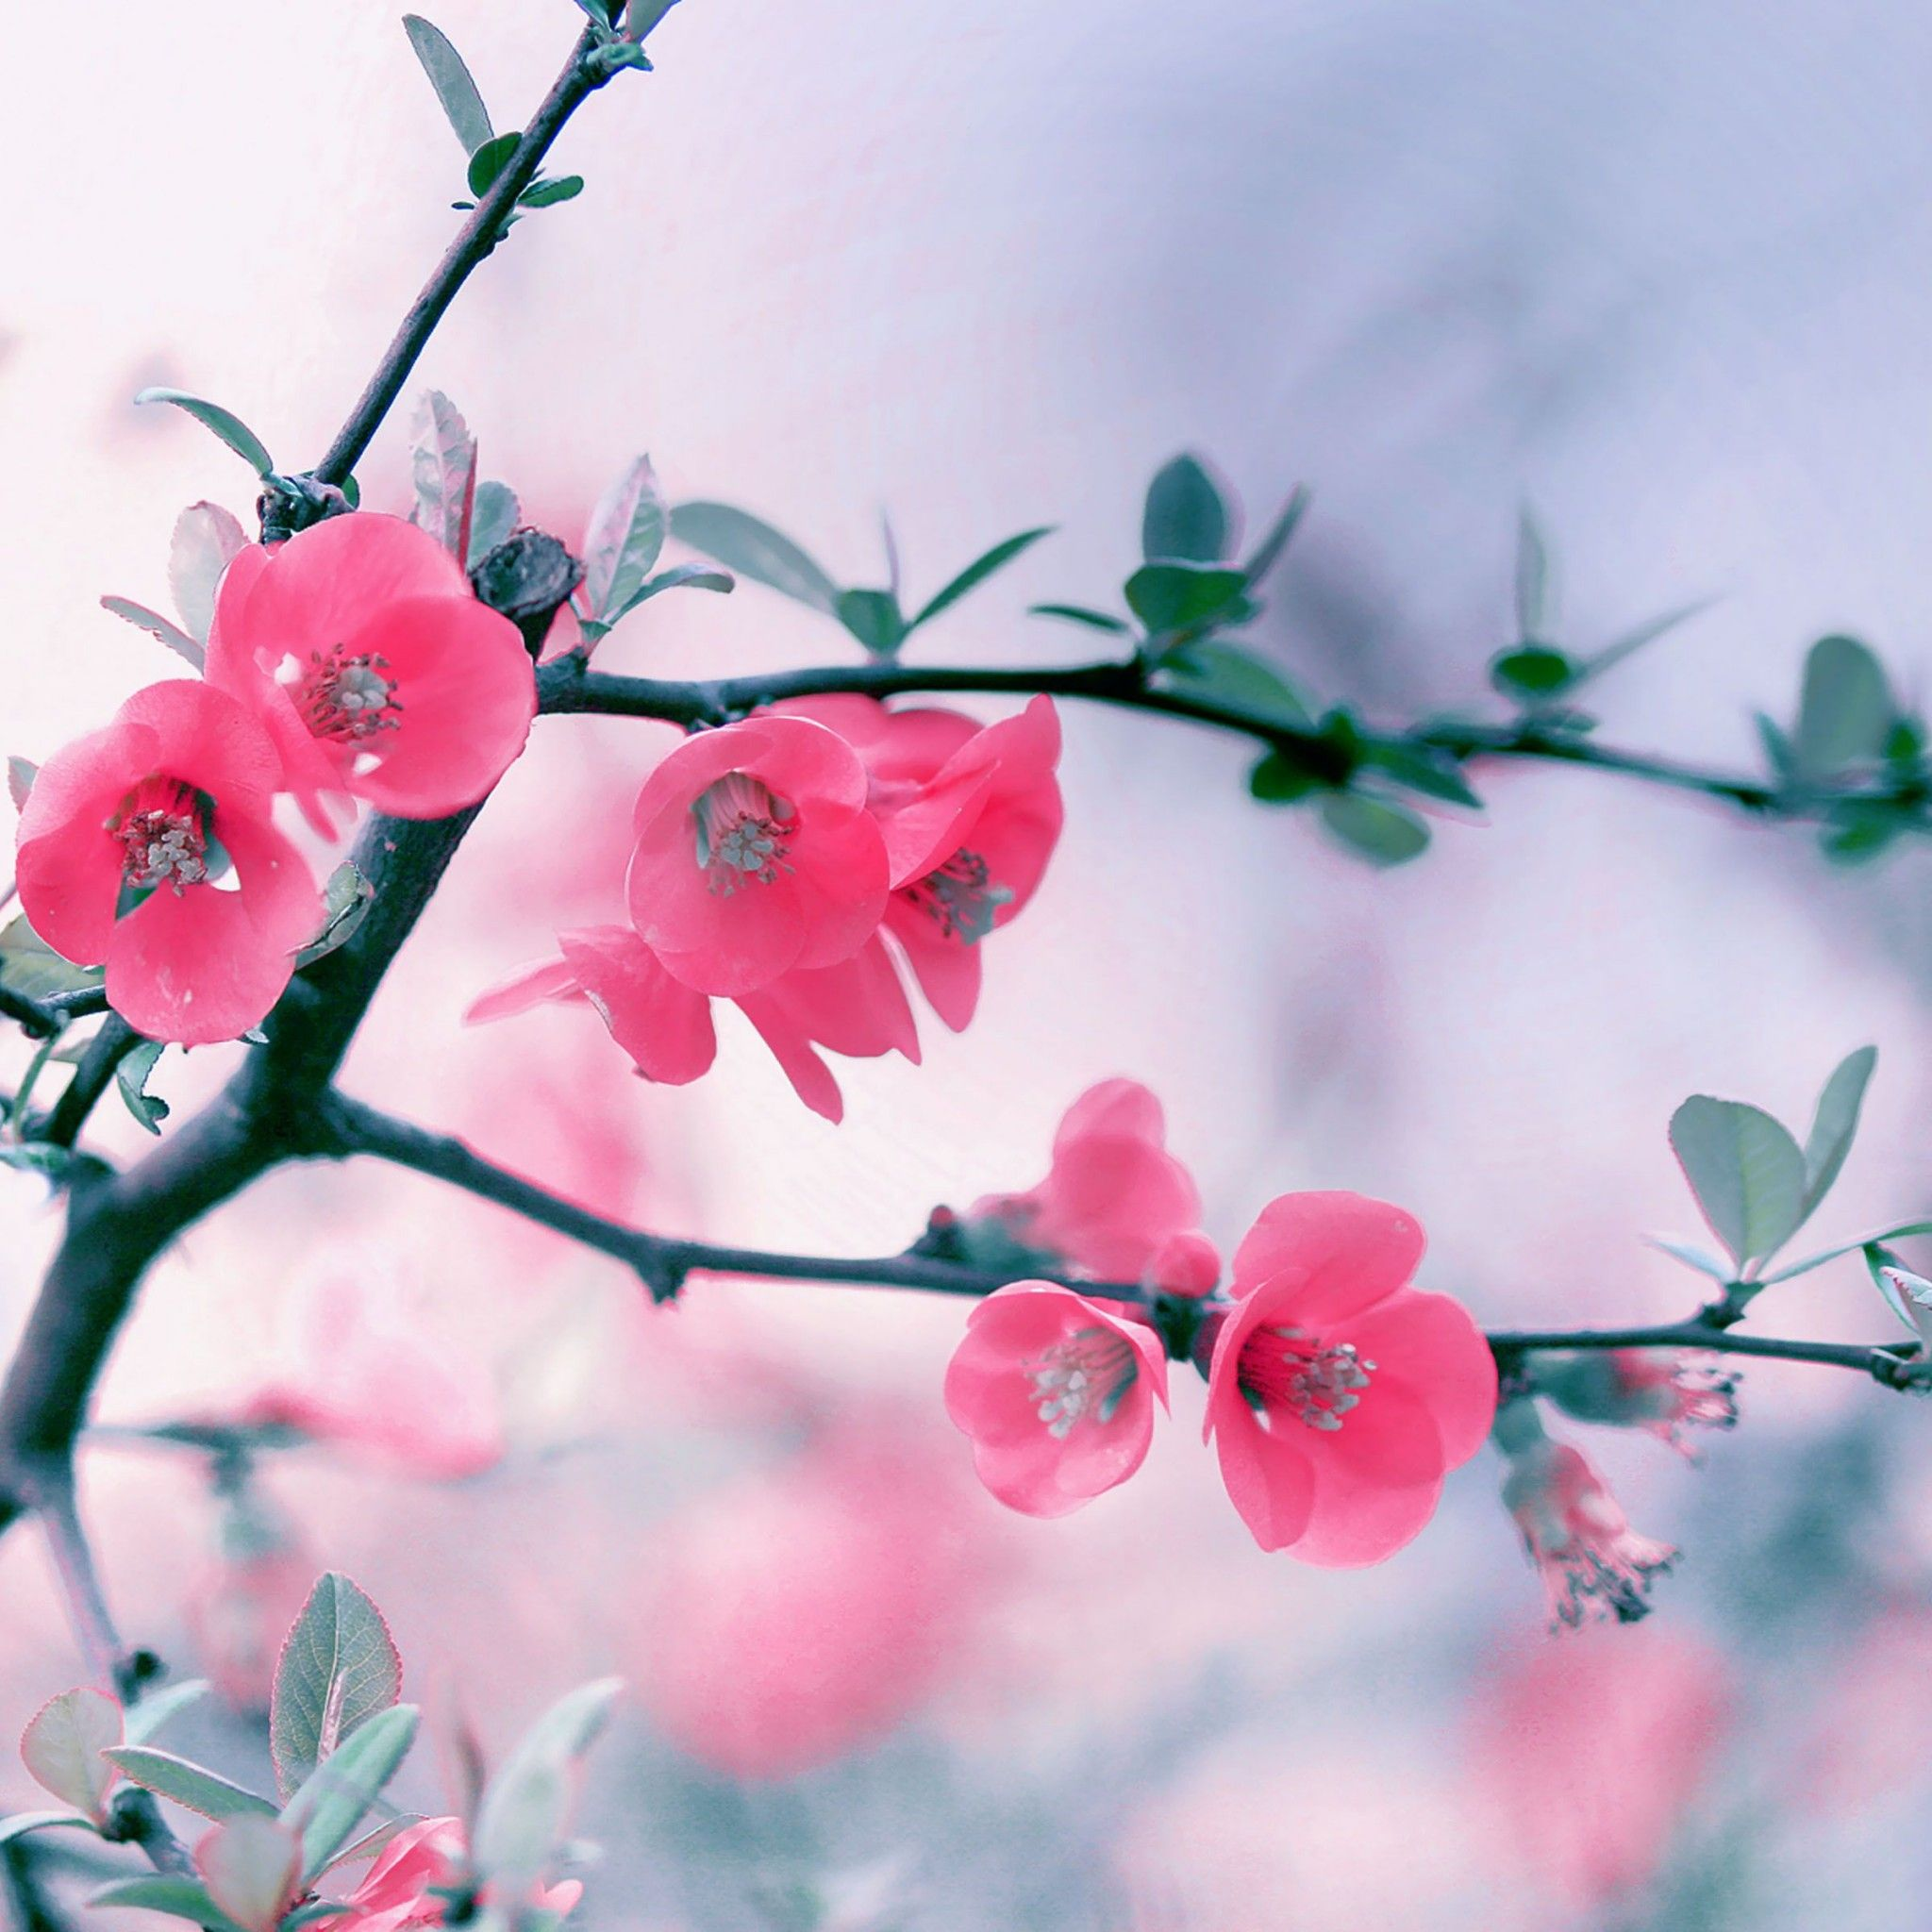 Pink Blossom Flowers IPad Wallpaper HD #iPad #wallpaper